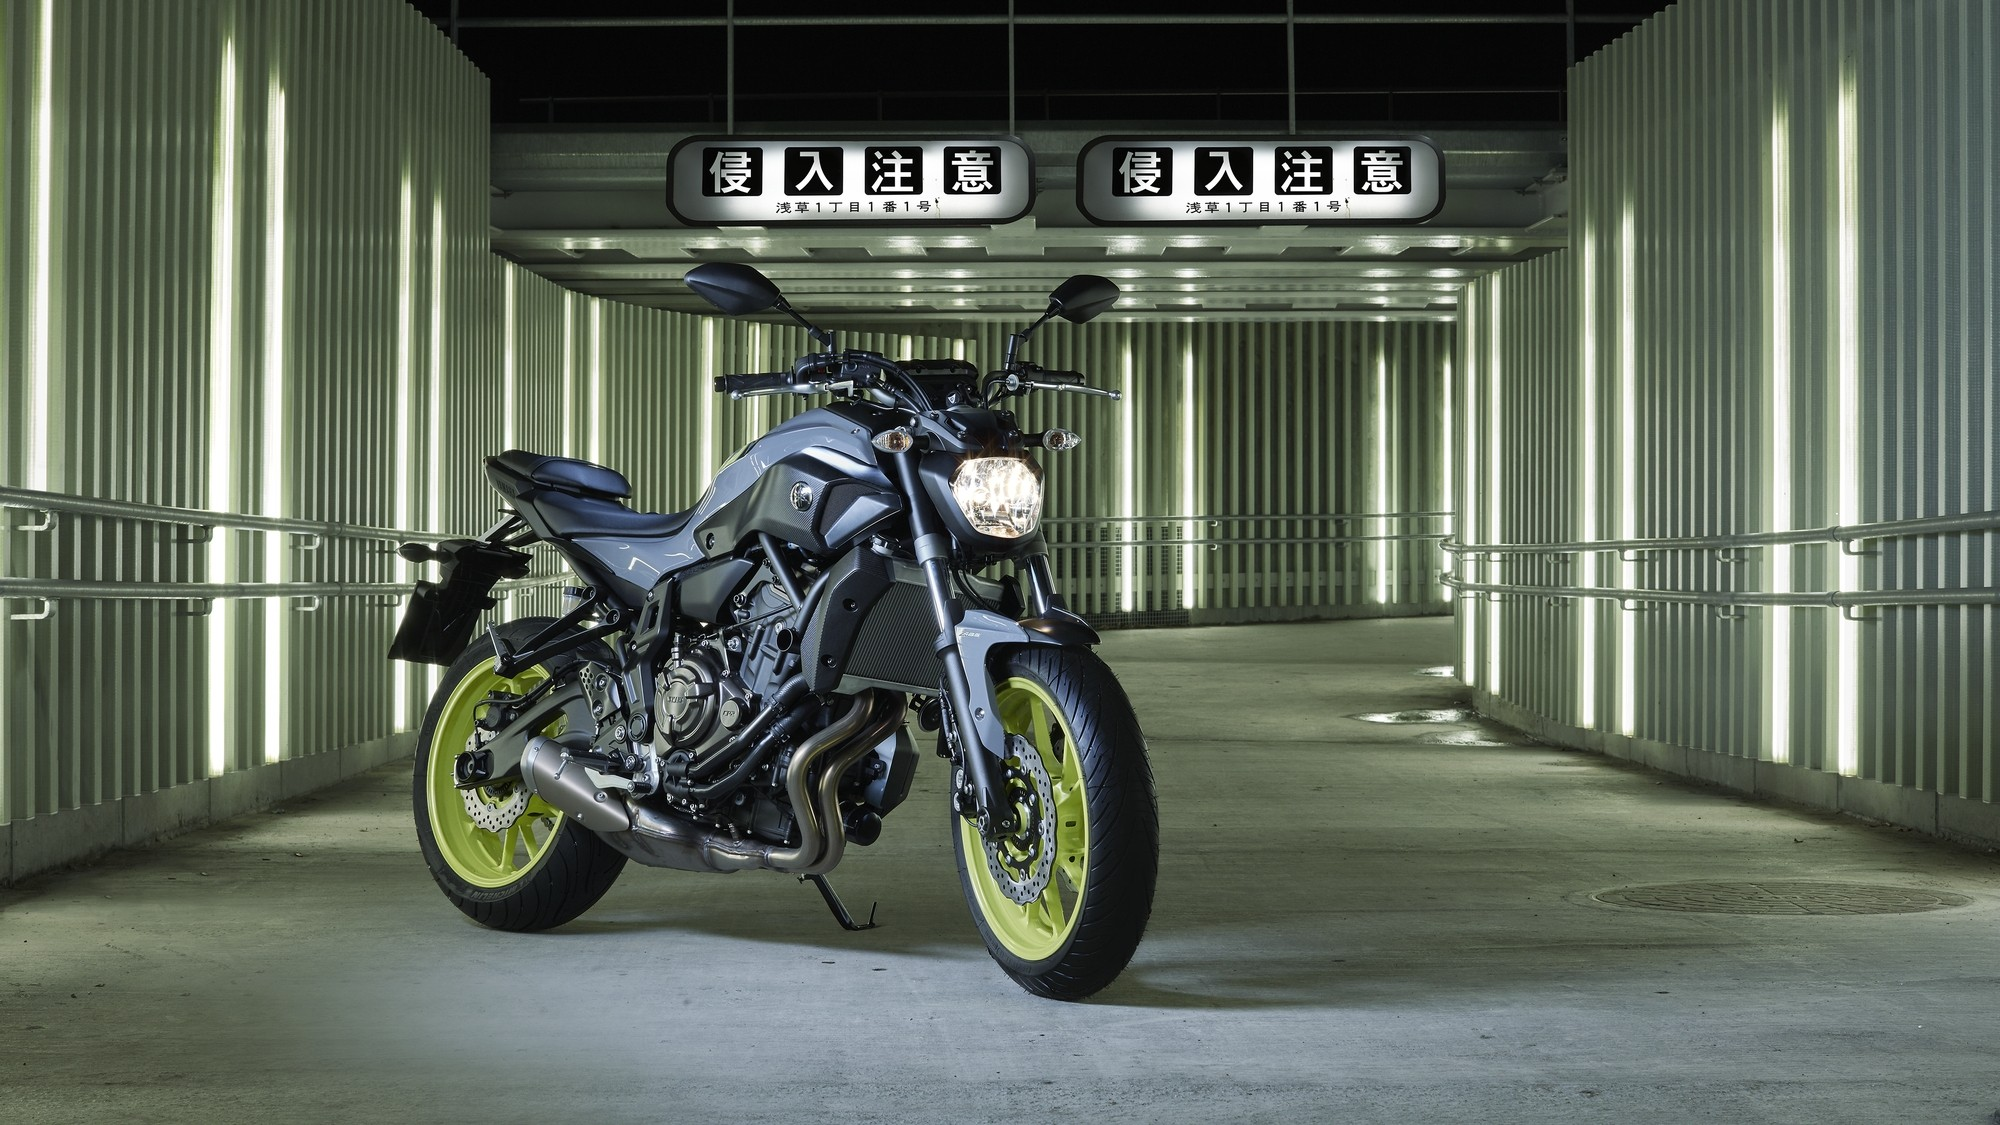 Yamaha Mt 09 Wallpaper Hd 29 Images On Genchi Info: Yamaha Adds Night Fluo To More MT Bikes, Shows The MT-07